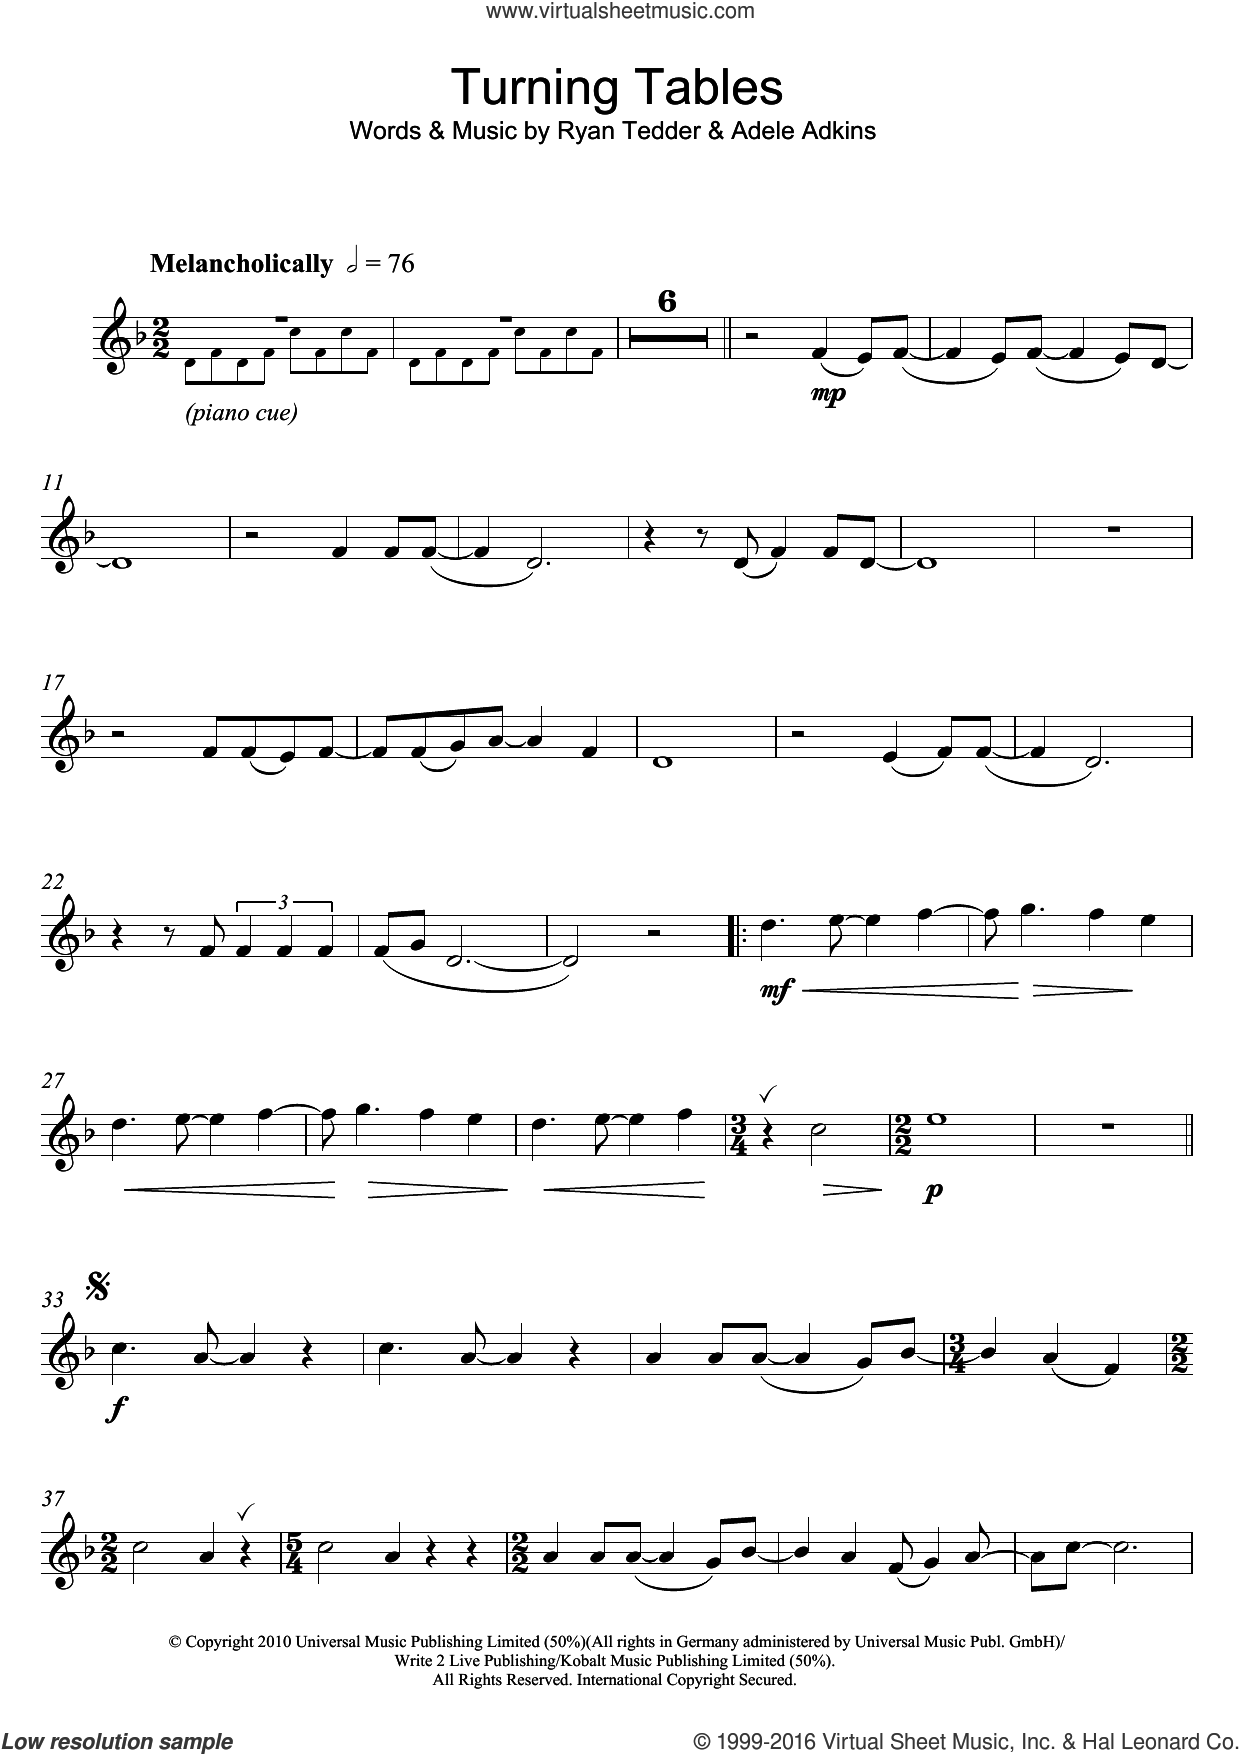 turning tables sheet music pdf